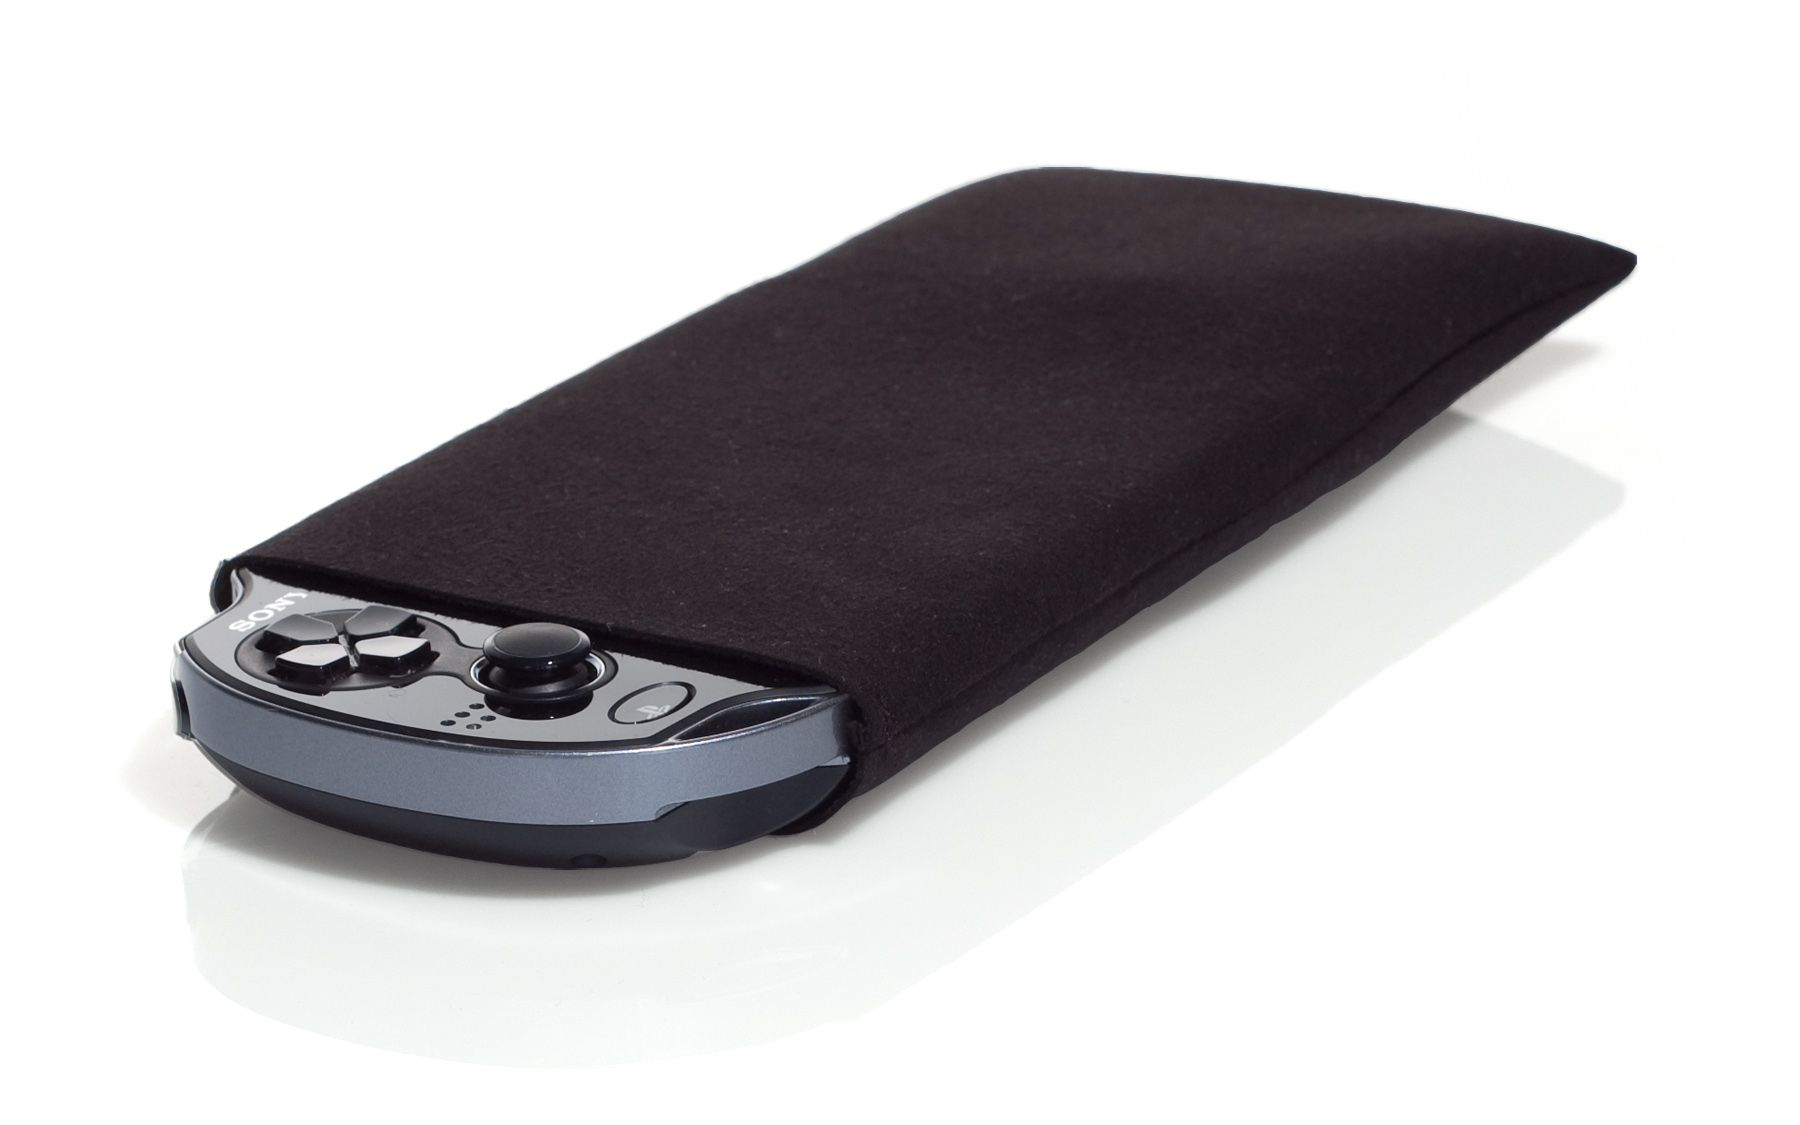 WaterField Designs PS Vita Suede Jacket - optional back pocket holds memory chips, ear buds, games, etc.     http://www.sfbags.com/products/ps-vita-cases/ps-vita-cases.php